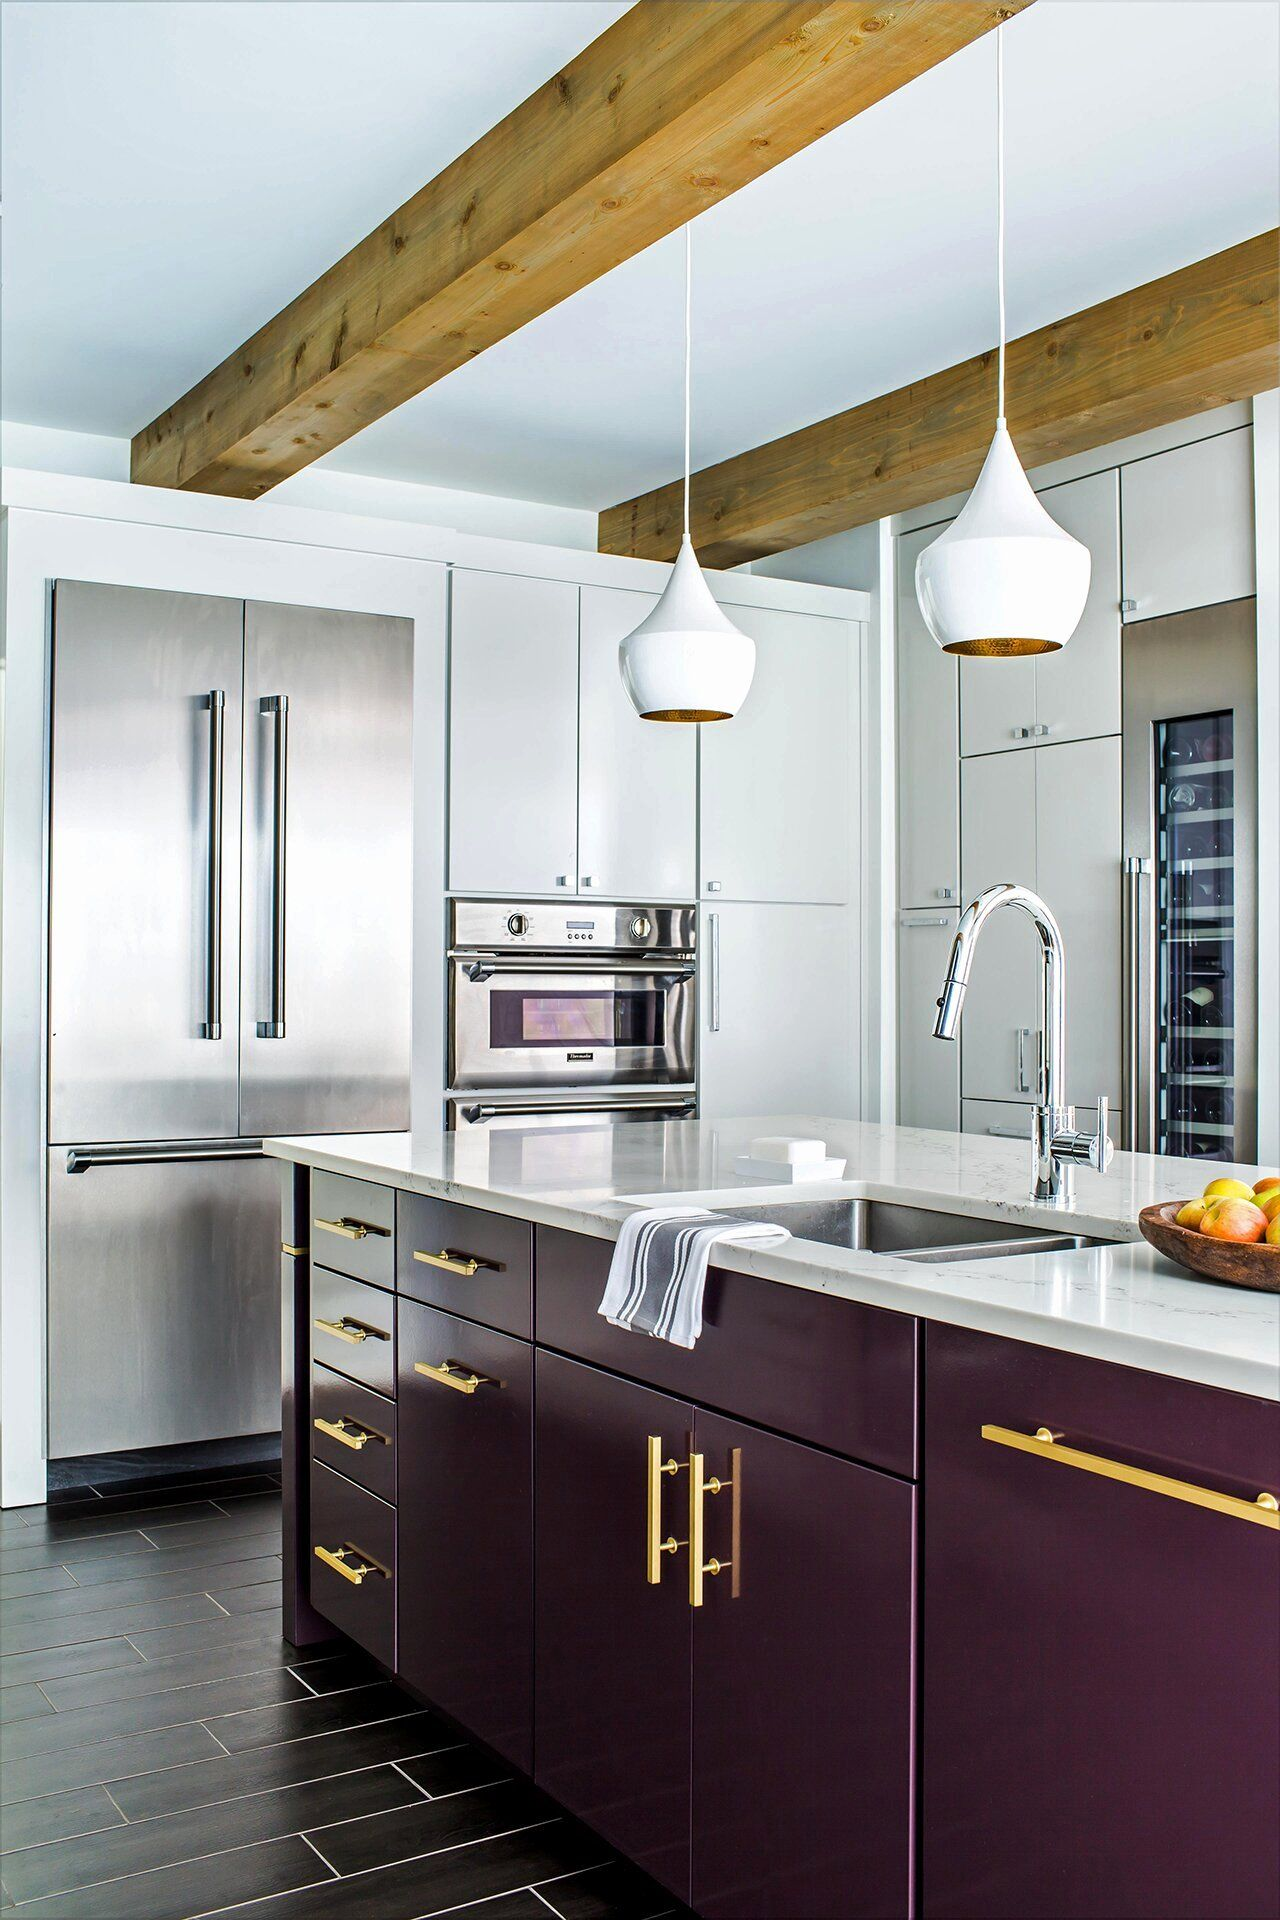 New Trends In Kitchen Luxury 20 Kitchen Cabinetry Trends We Love